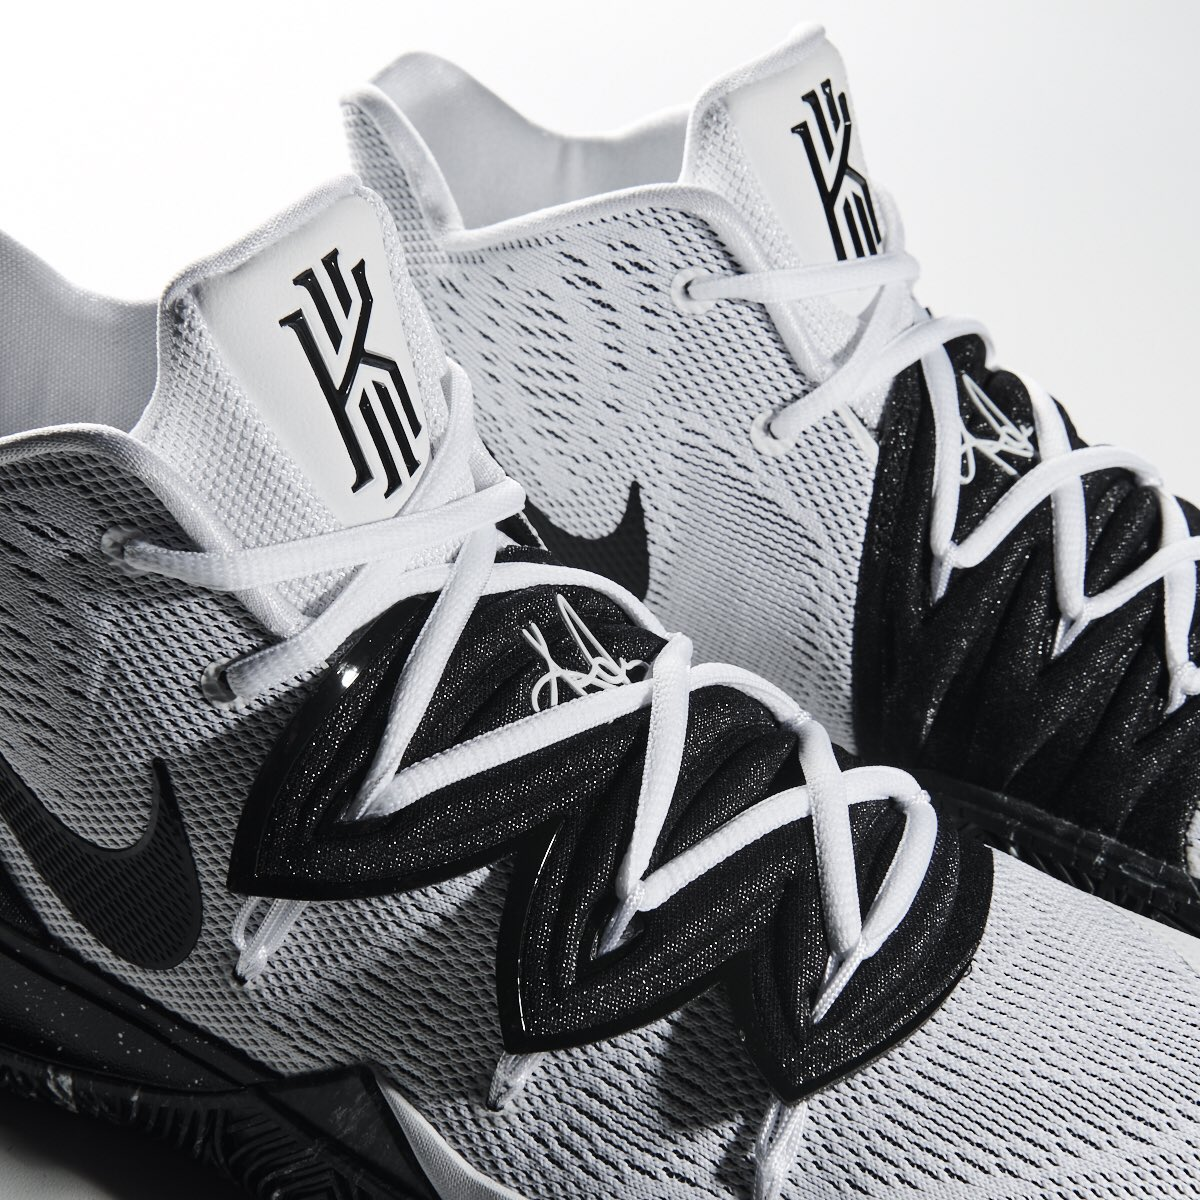 """timeless design 73c35 b5005 The Nike Kyrie 5 """"Cookies and Cream"""" is available now at Jimmy Jazz  http   www.jimmyjazz.com mens footwear nike-kyrie-5 AO2918-100 color White  … ..."""